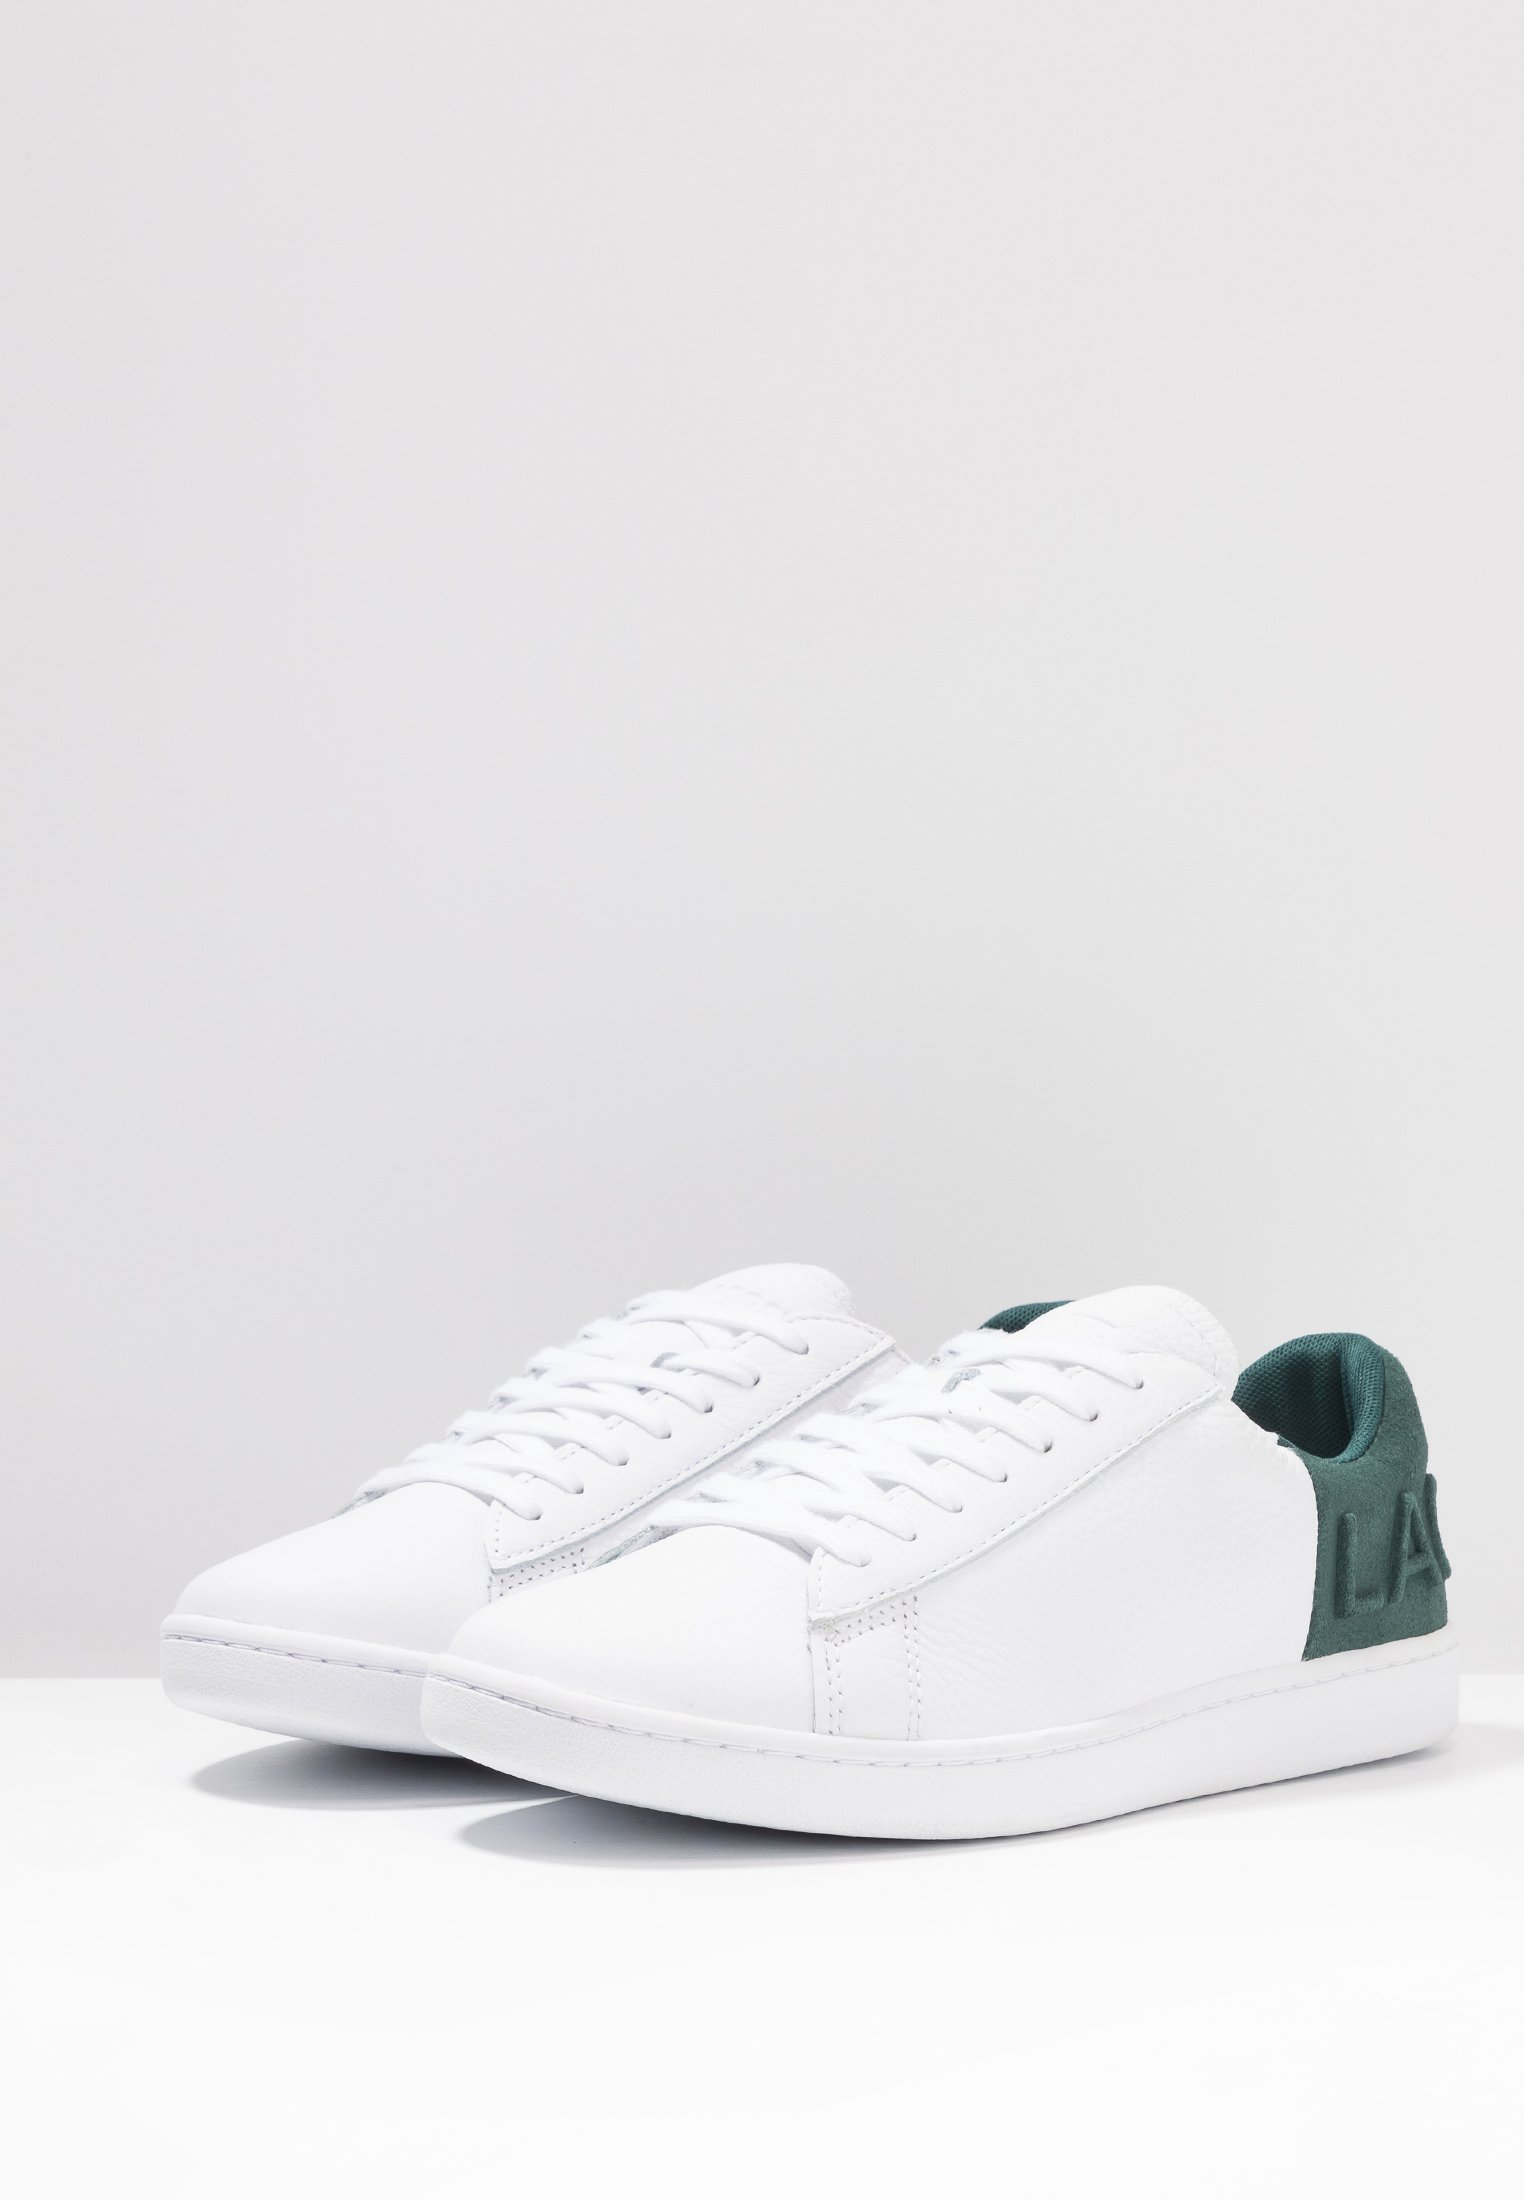 CarnabyBaskets White dark Green Basses Lacoste Pn0kO8w